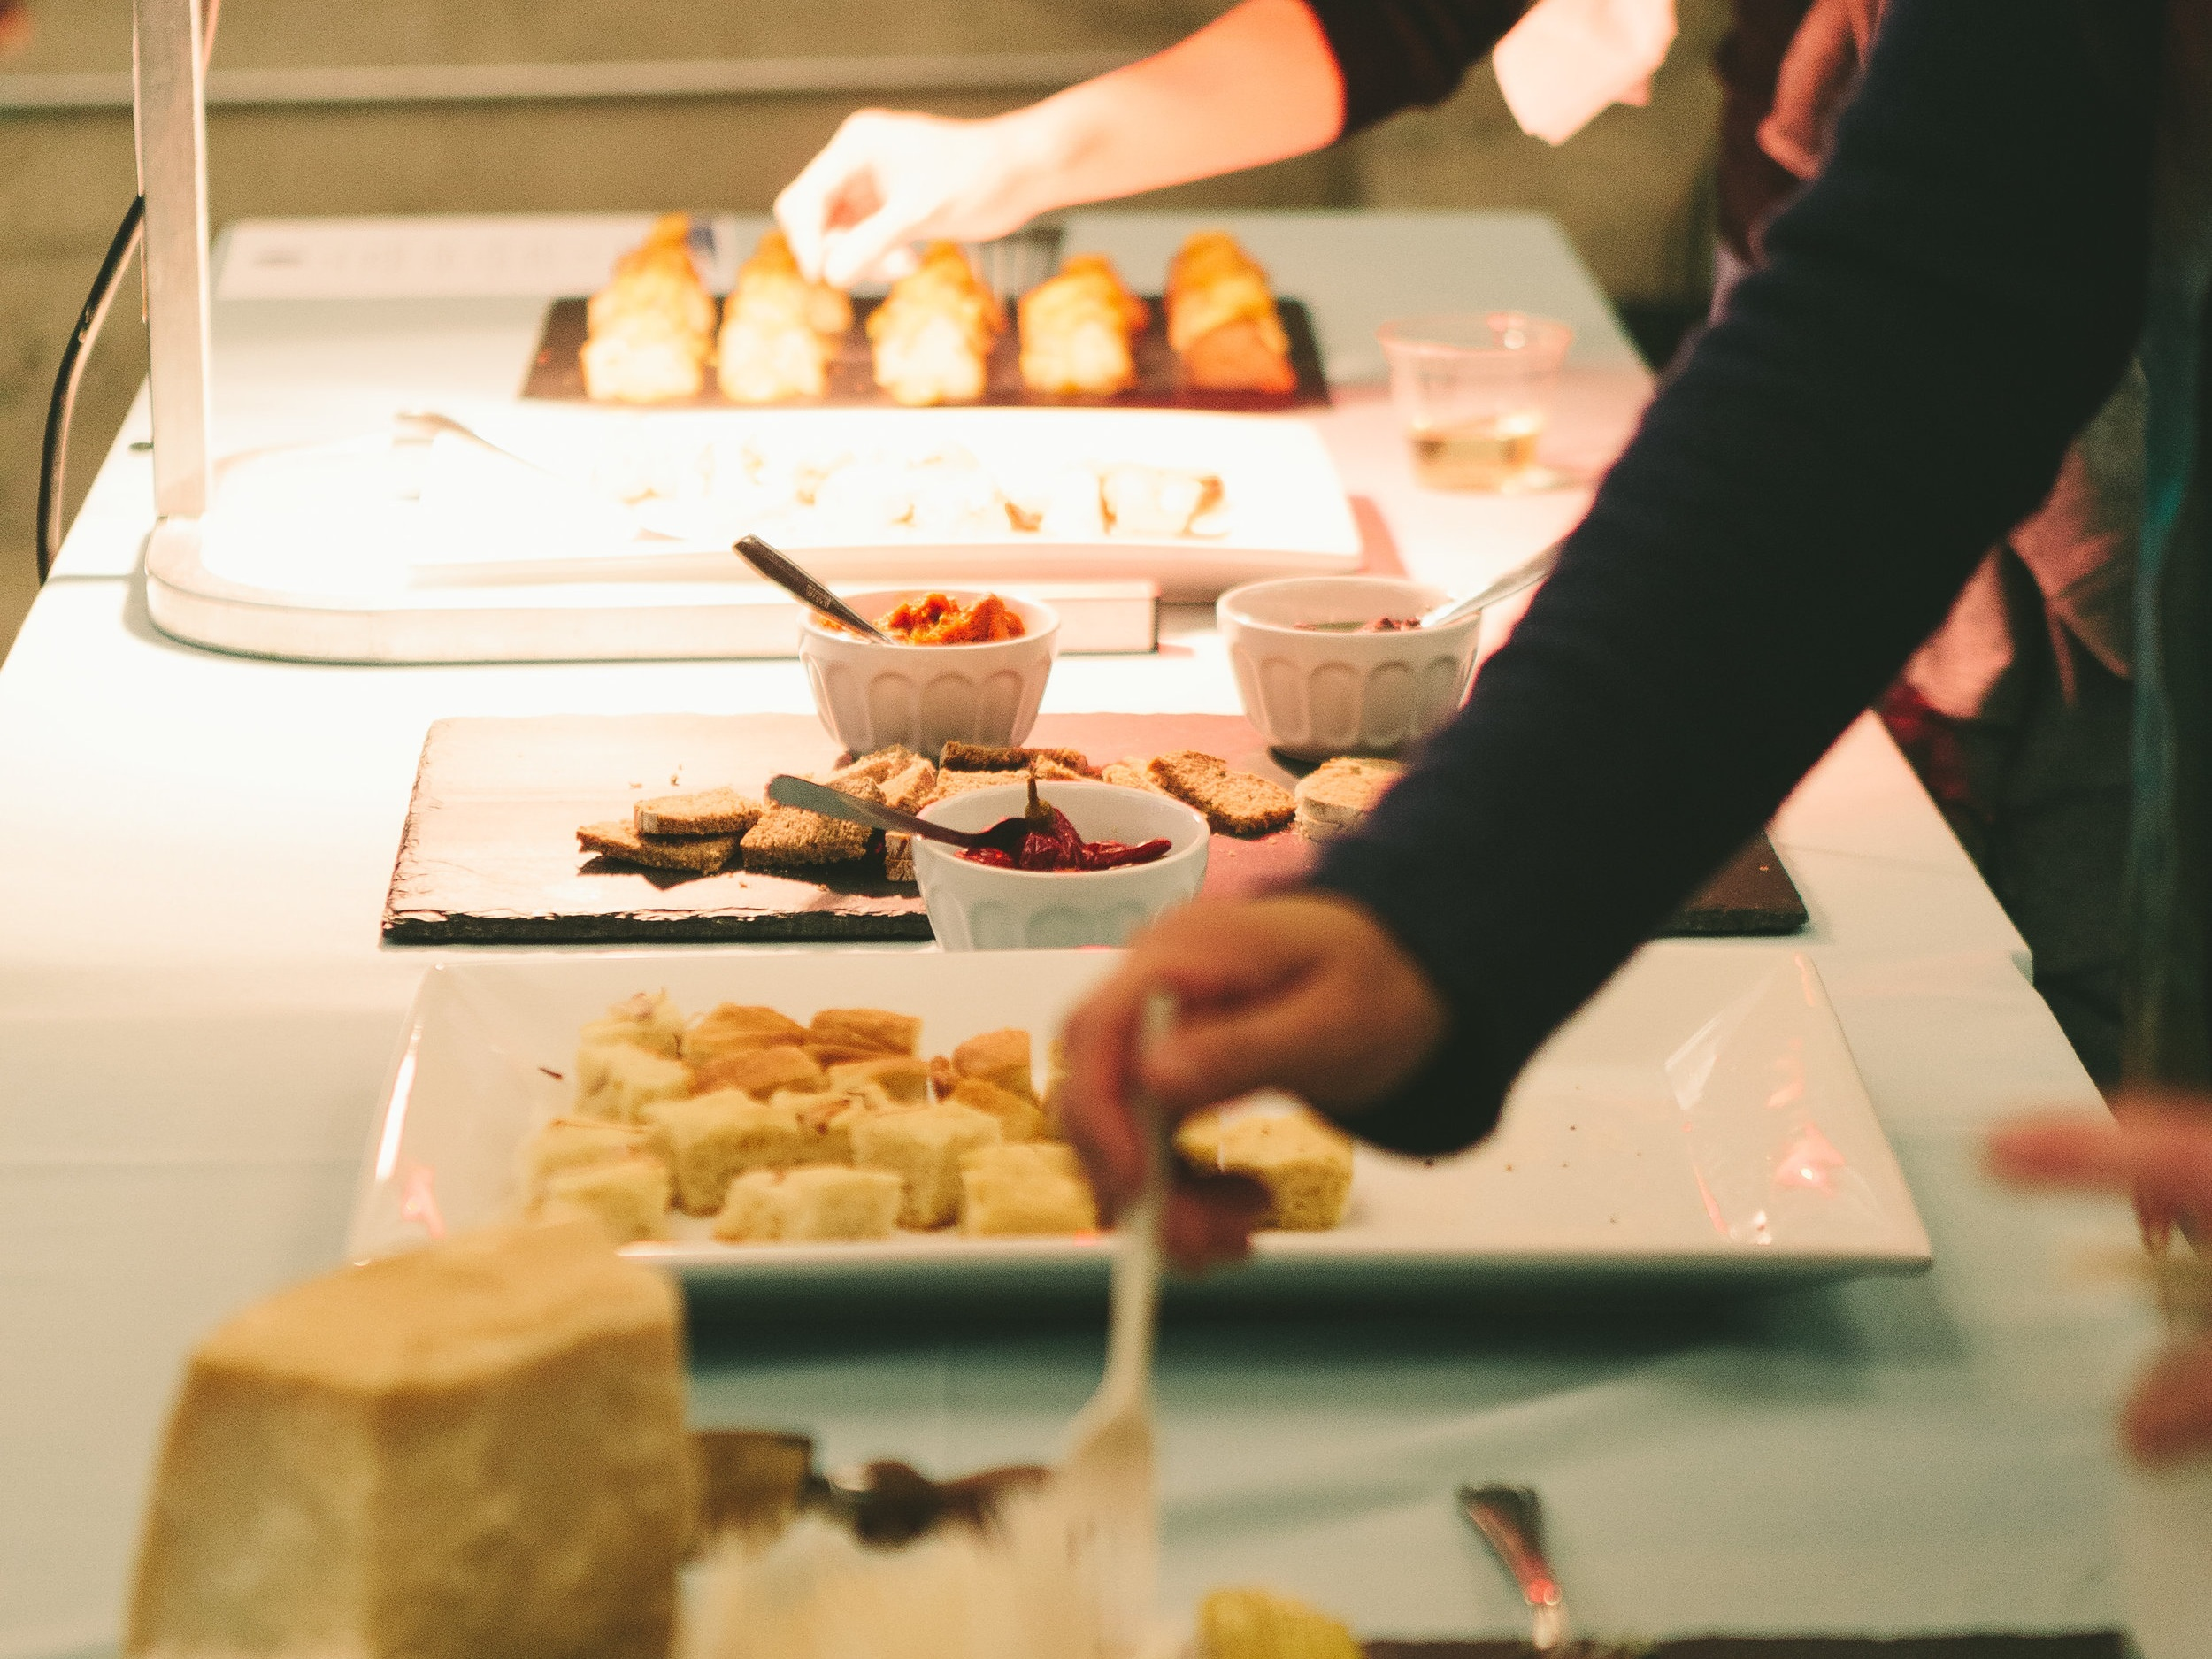 Corporate Events - Gourmet catering for large groups